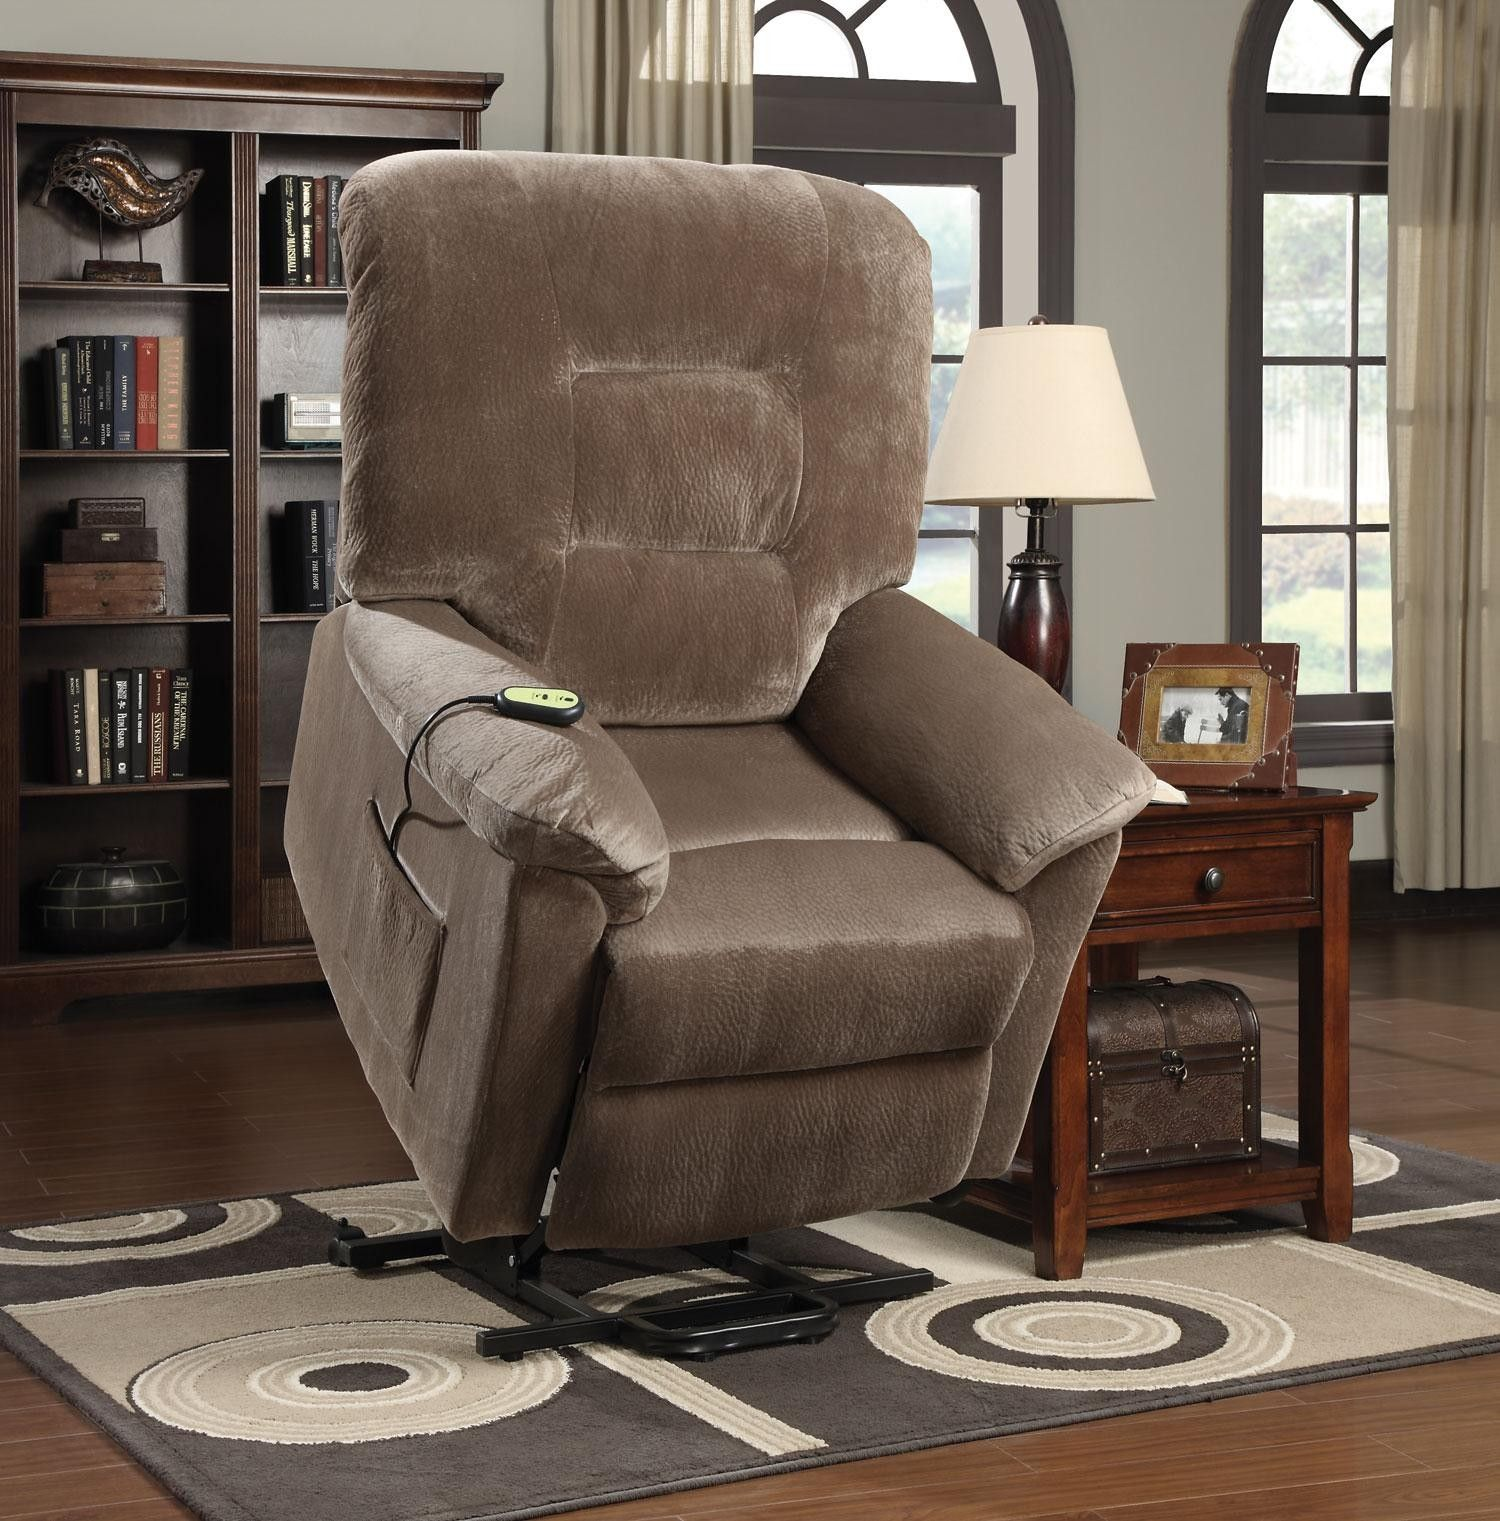 Magnificent Brown Sugar Textured Velvet Fabric Power Lift Recliner Chair Onthecornerstone Fun Painted Chair Ideas Images Onthecornerstoneorg